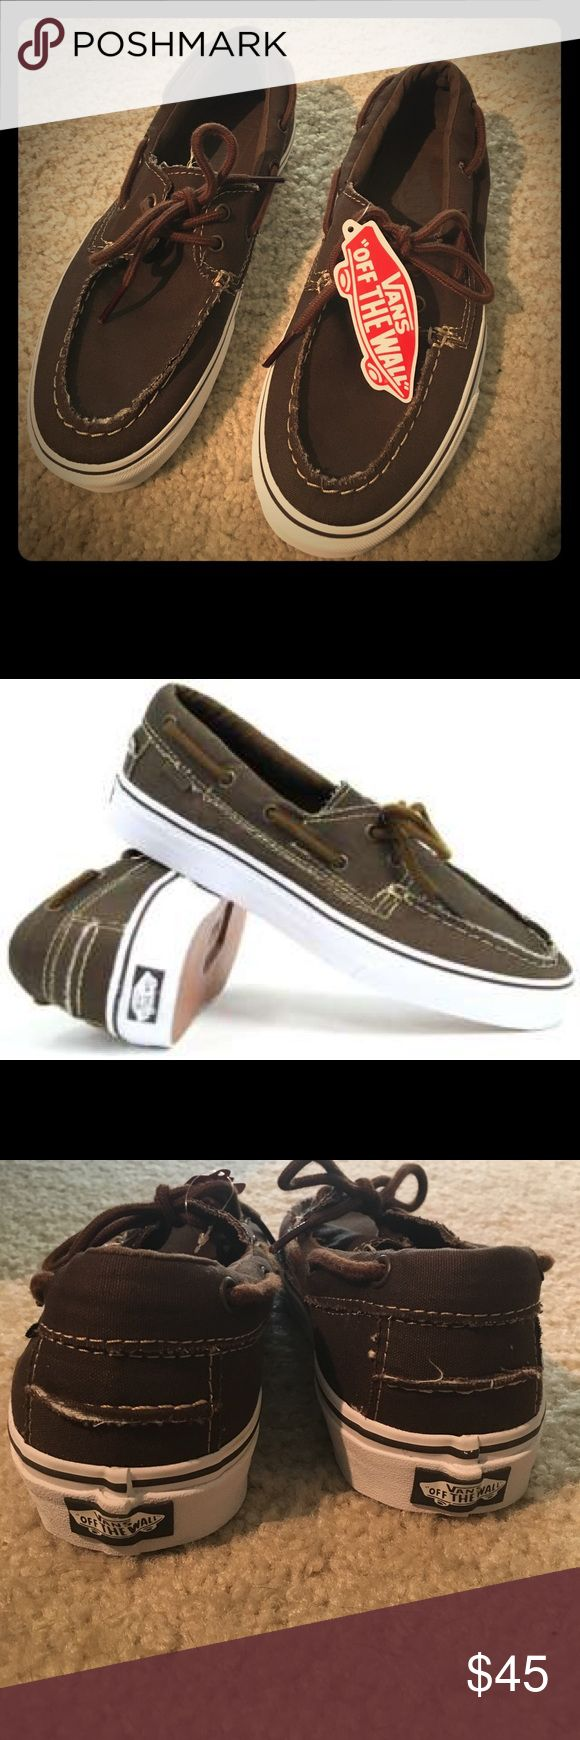 Vans Zapato Del Barco Men's 7.5 BRAND NEW with Tags. Never been worn. (No box) Vans Shoes Boat Shoes